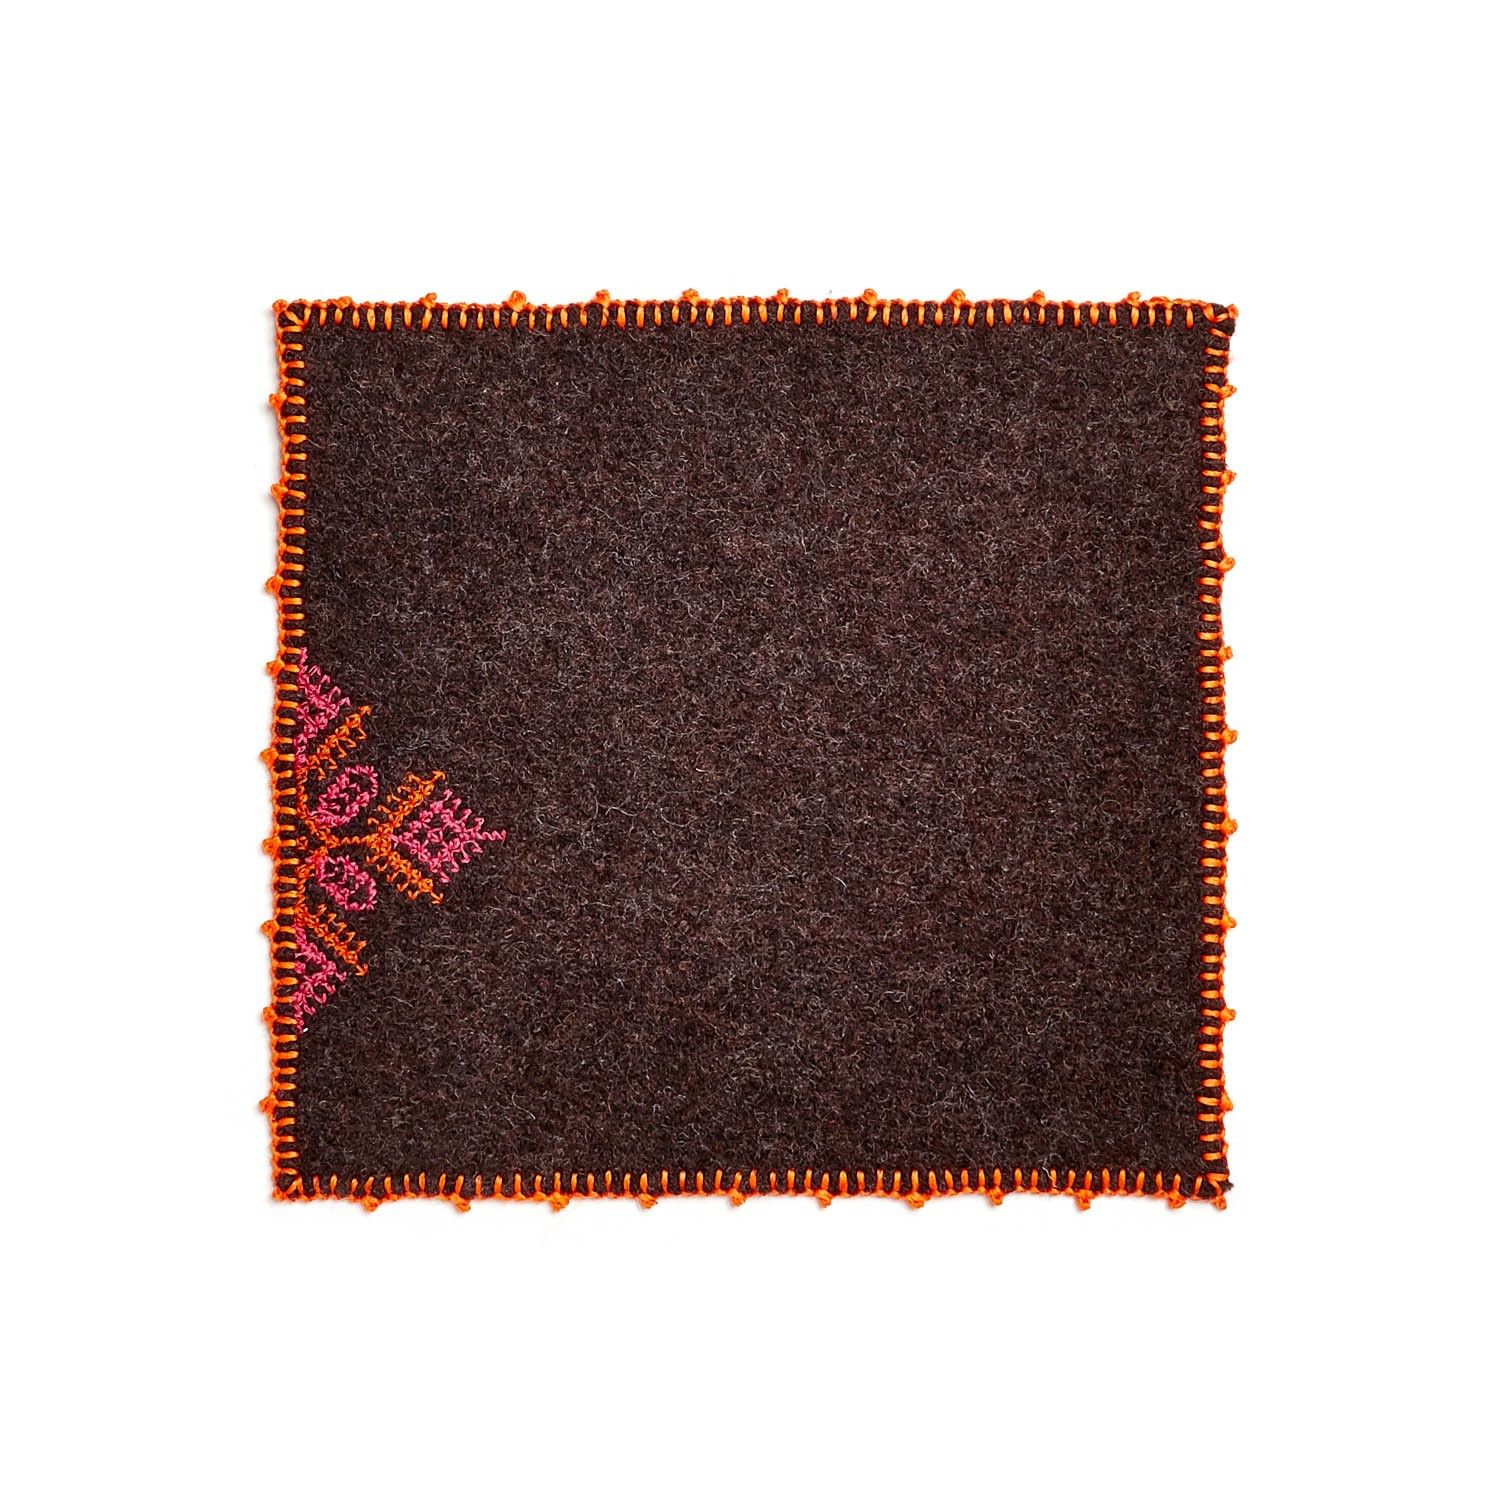 Exclusively at ABC, table mats and coasters draw inspiration from the culturally rich city of Fes. Each is embroidered with a boldly colored diamond design, evocative of the colored tiles found in Moroccan architecture. Table Mat sold below in Black, Brown, and Green. Coaster sold below in Anthracite.